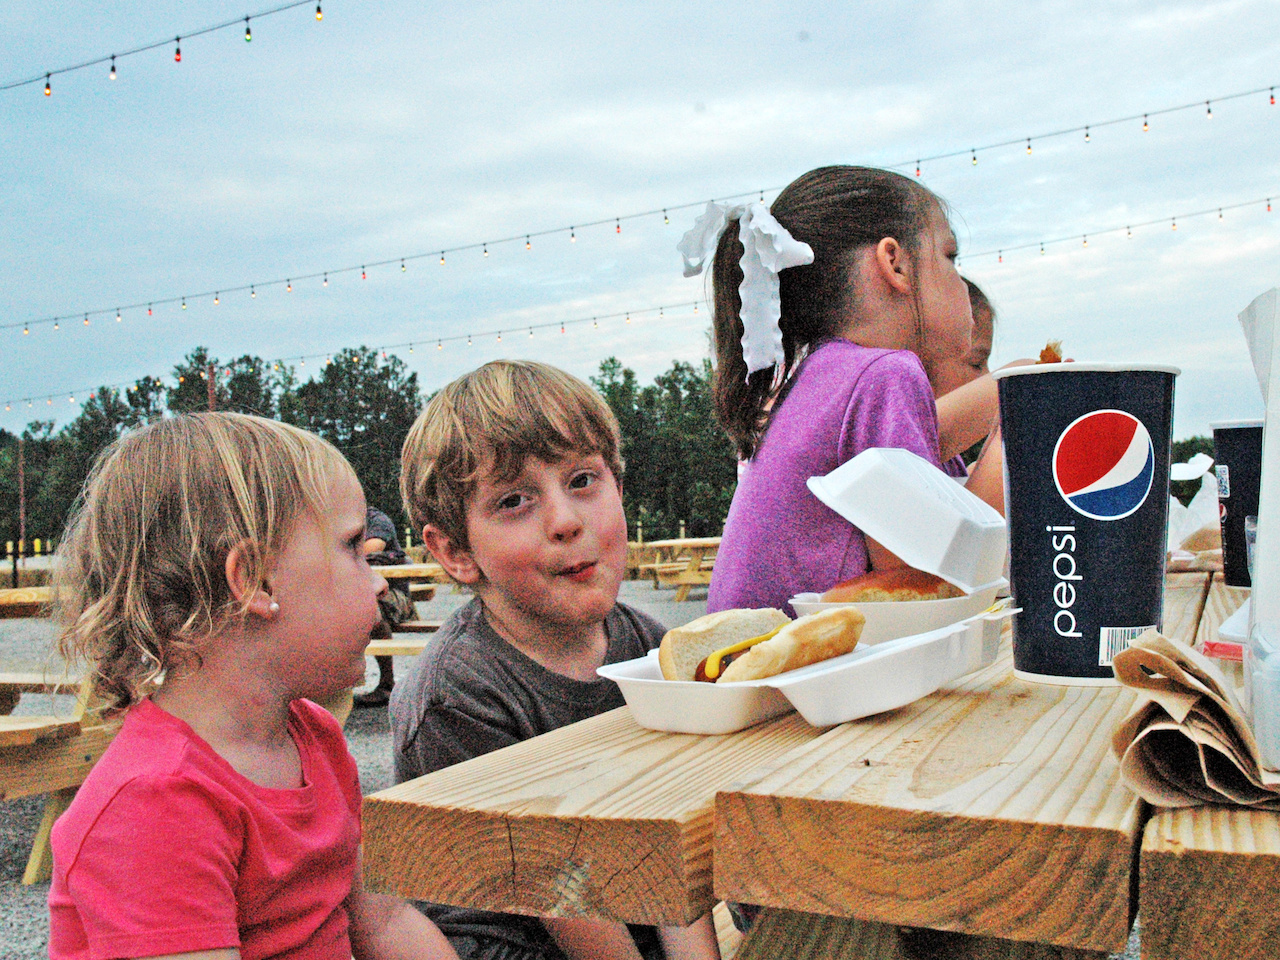 Adorable kids fuel up for the evening's movies and fun!